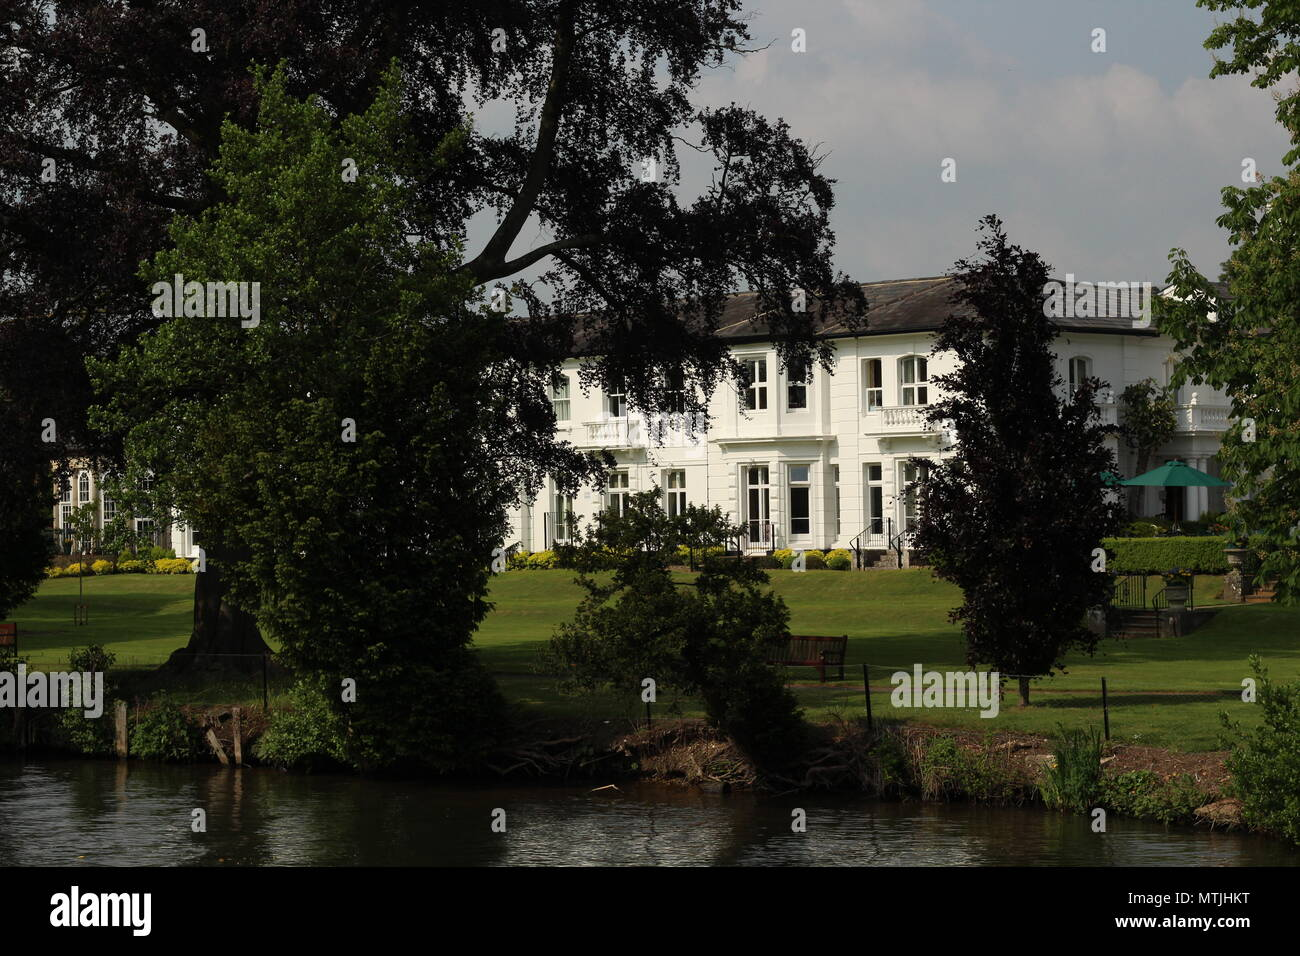 Landscape & Lifestyle - photograph of Greenlands, a luxurious estate of historical significance now a riverside wedding venue. - Stock Image